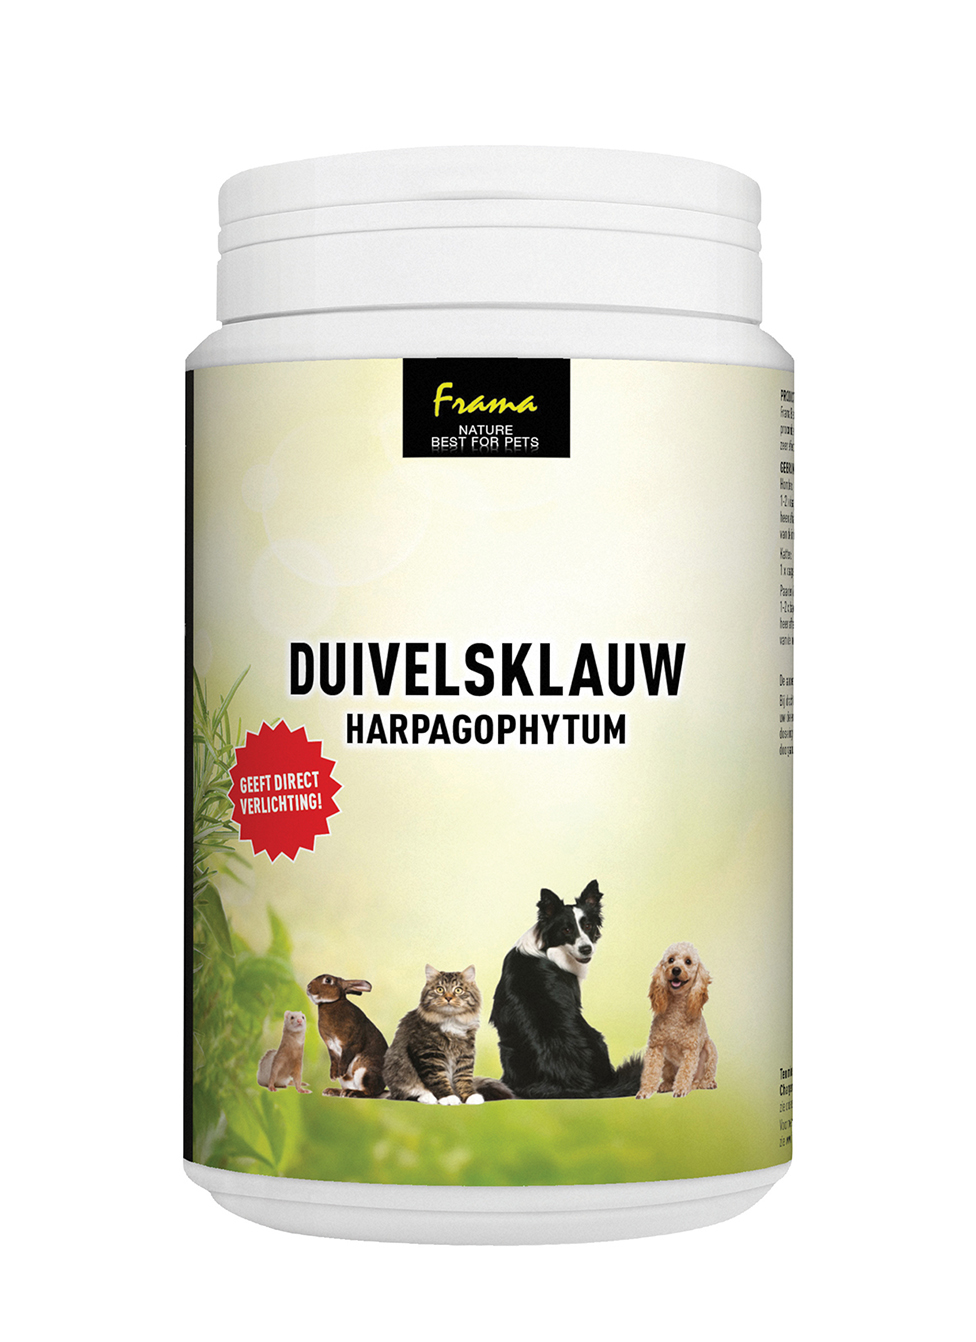 FRAMA DUIVELSKLAUW FIJN - NATURE BEST FOR PETS (75 GR)